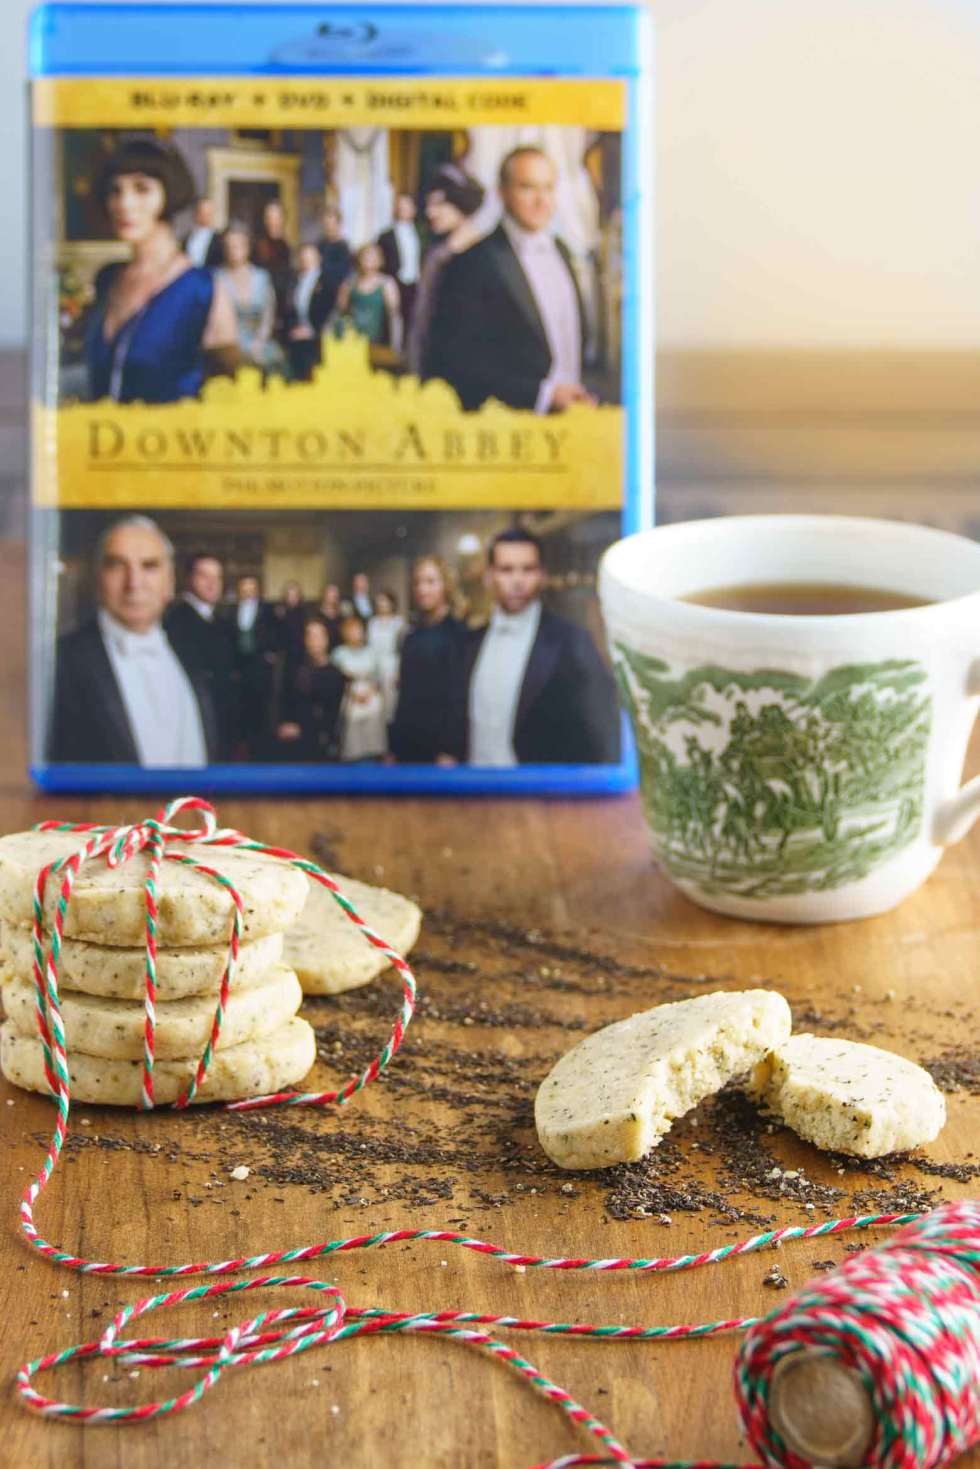 Downton Abbey DVD with tea and Cookies